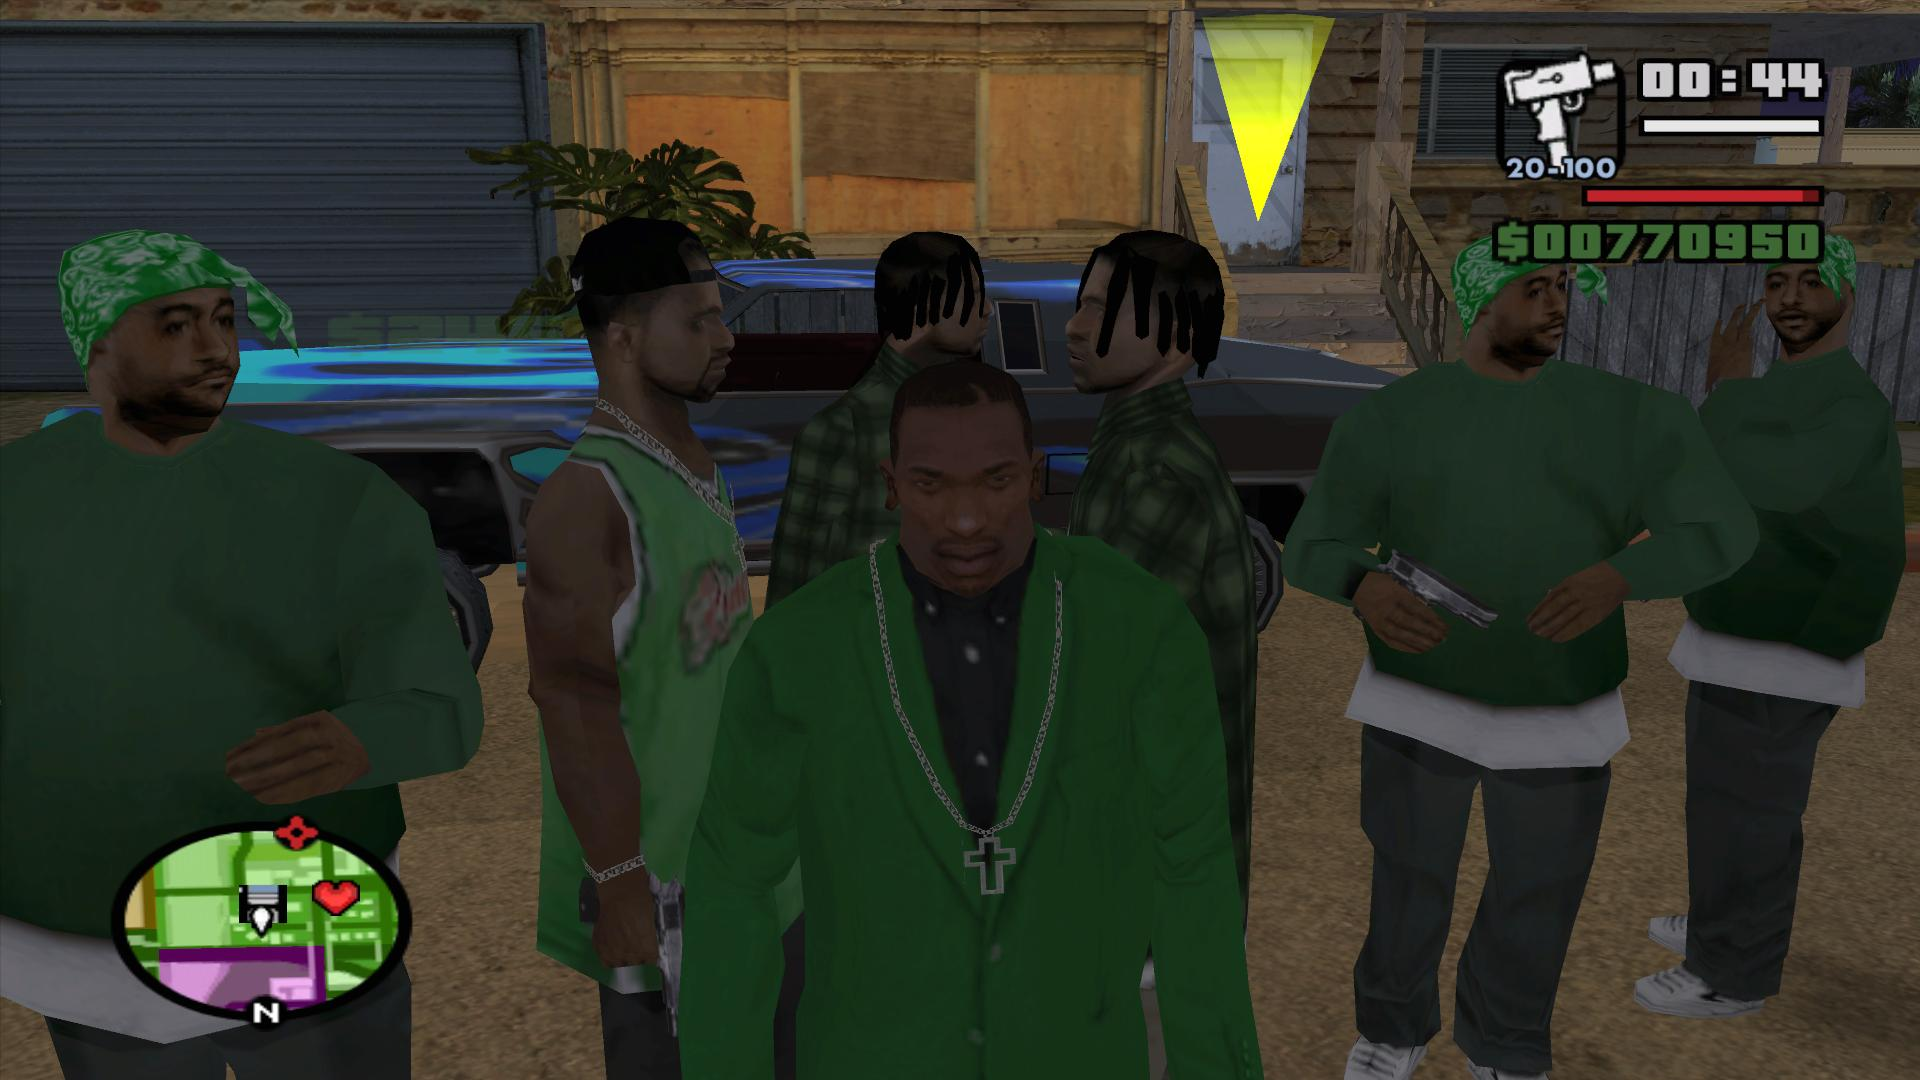 CJ3 - Grand Theft Auto: San Andreas